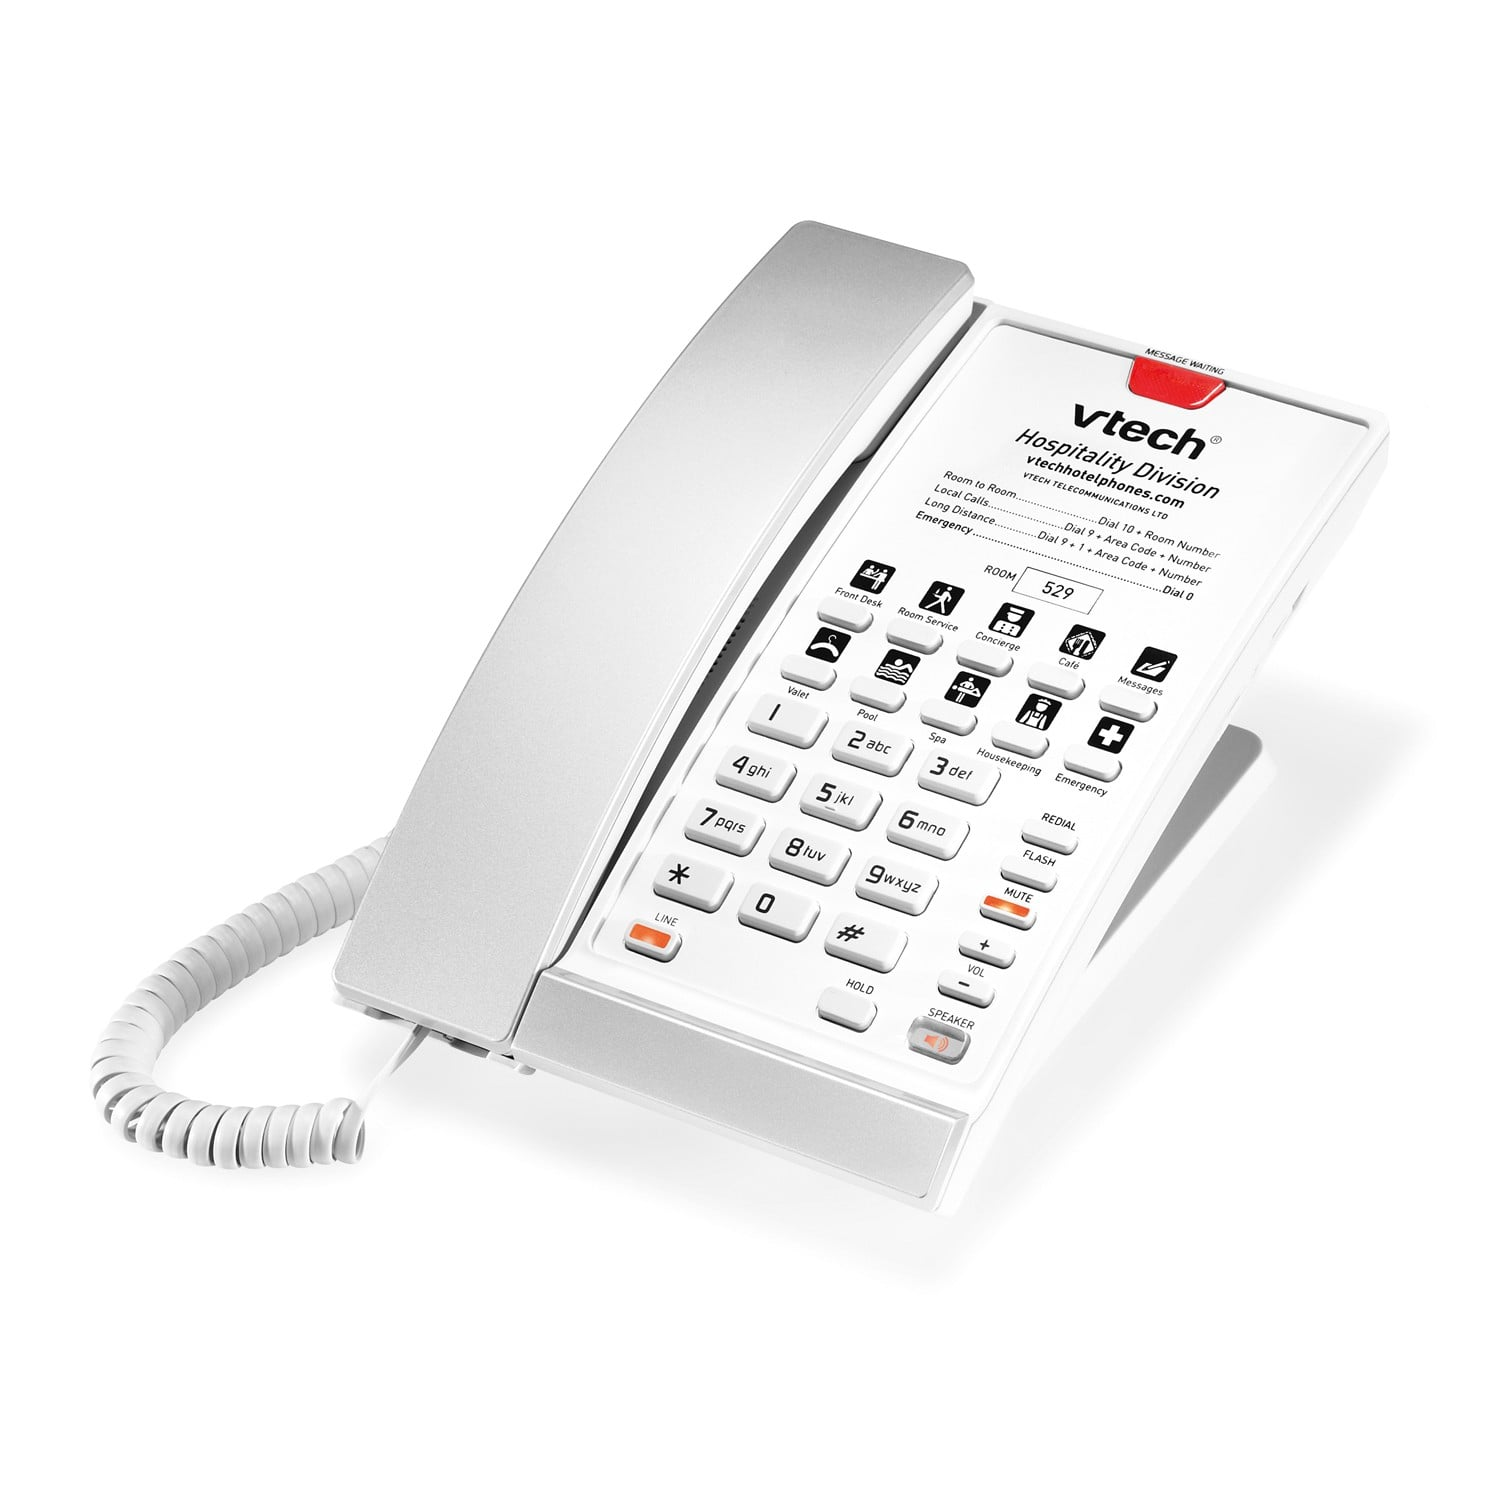 1 Line Contemporary Sip Corded Phone Vtech Hotel Phones